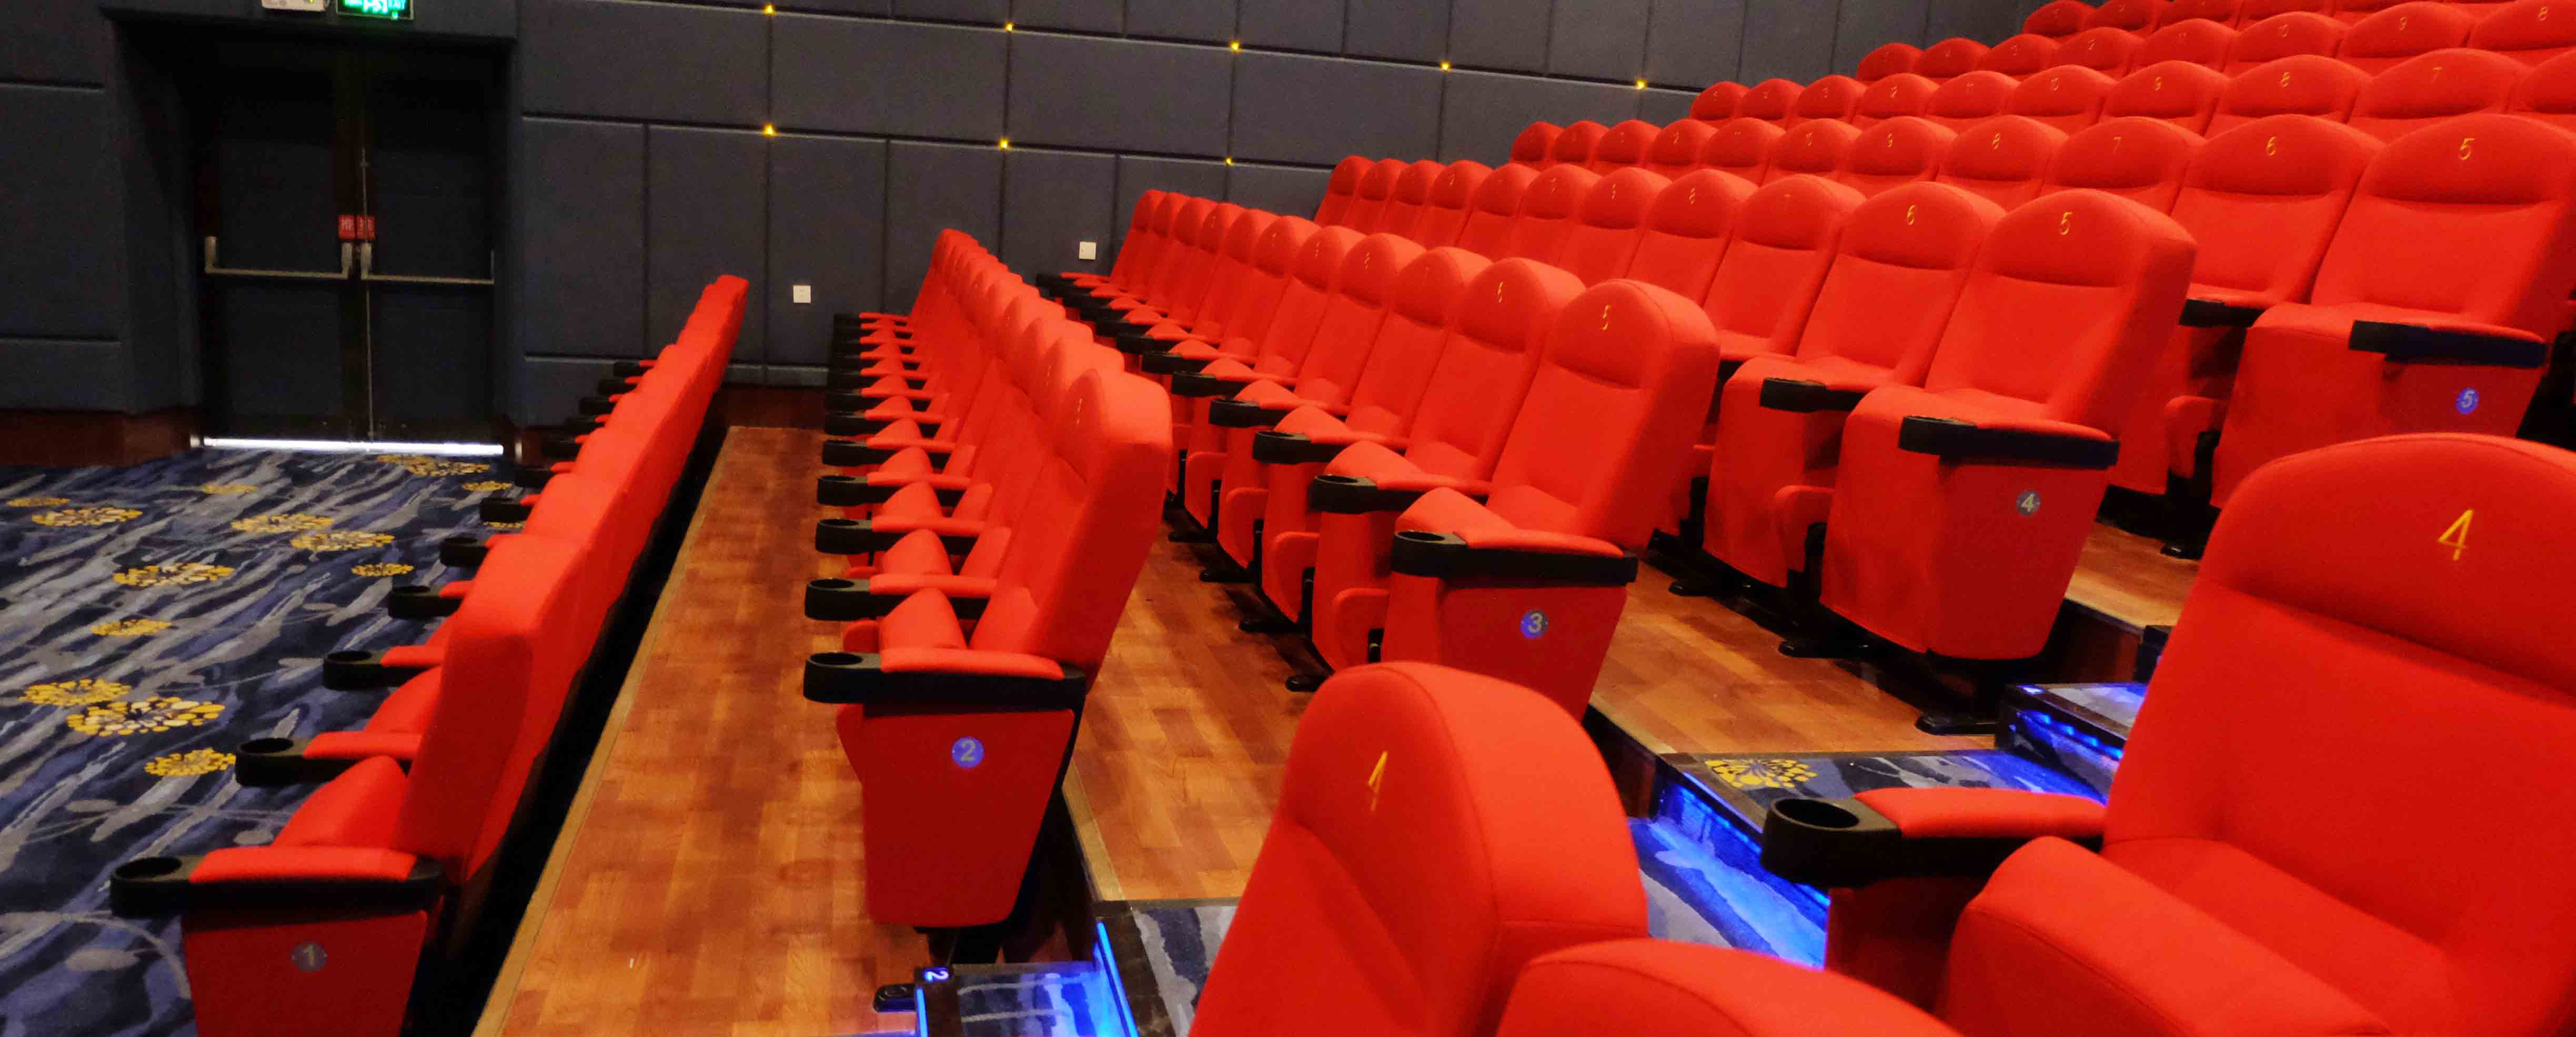 HONGJI hj9926 theater room recliners competitive price for sale-12